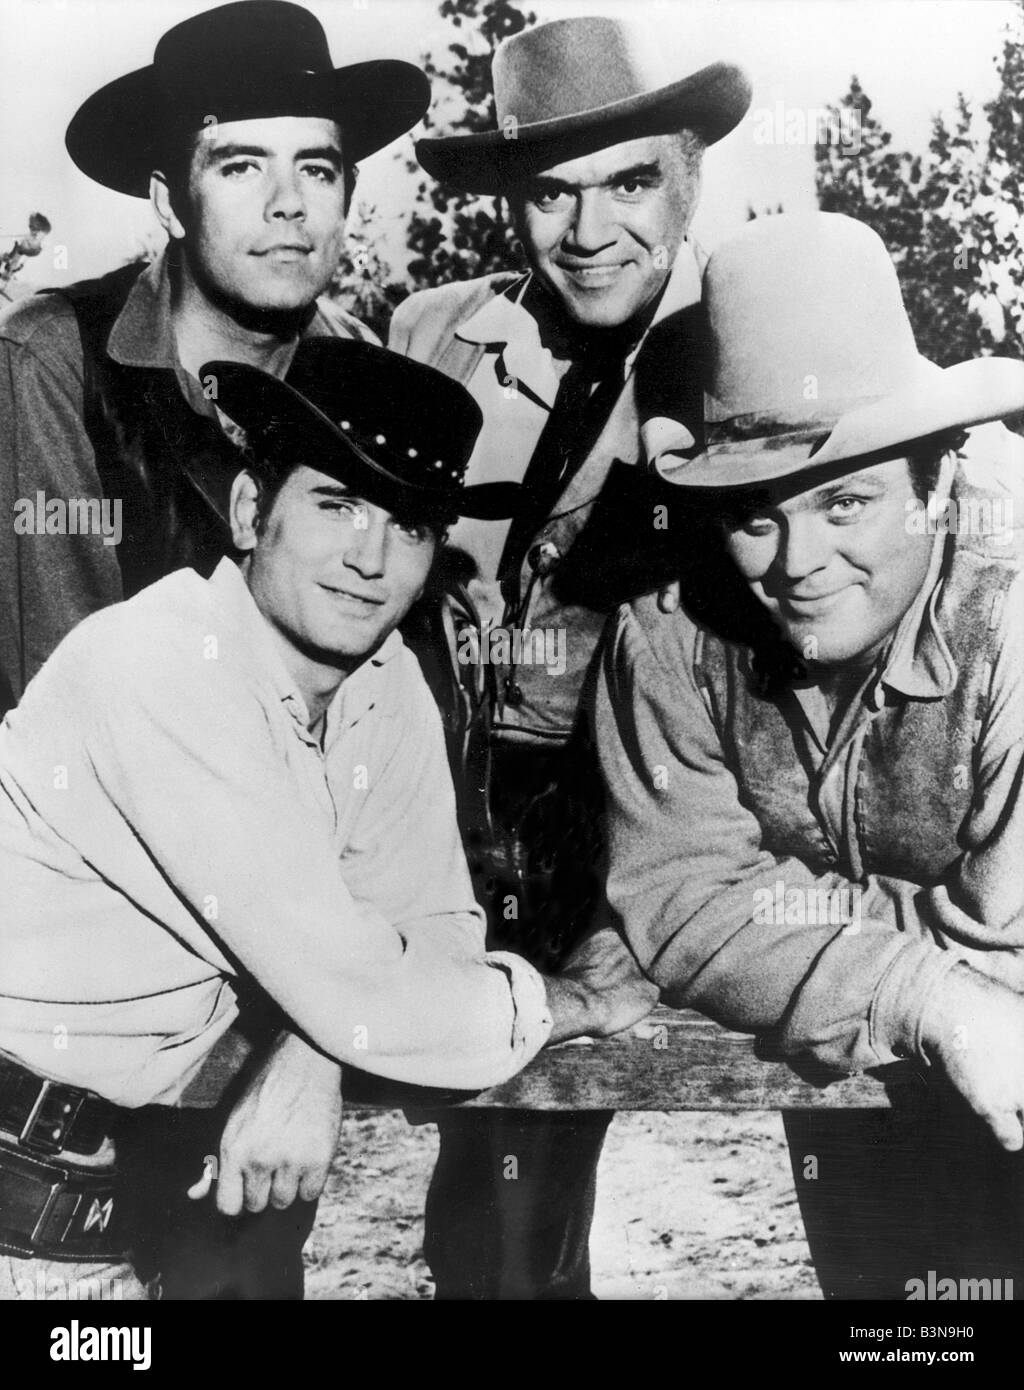 BONANZA US TV series with clockwise from top left: Michael Landon, Lorne Greene, Dan Blocker and Adam Cartwright Stock Photo